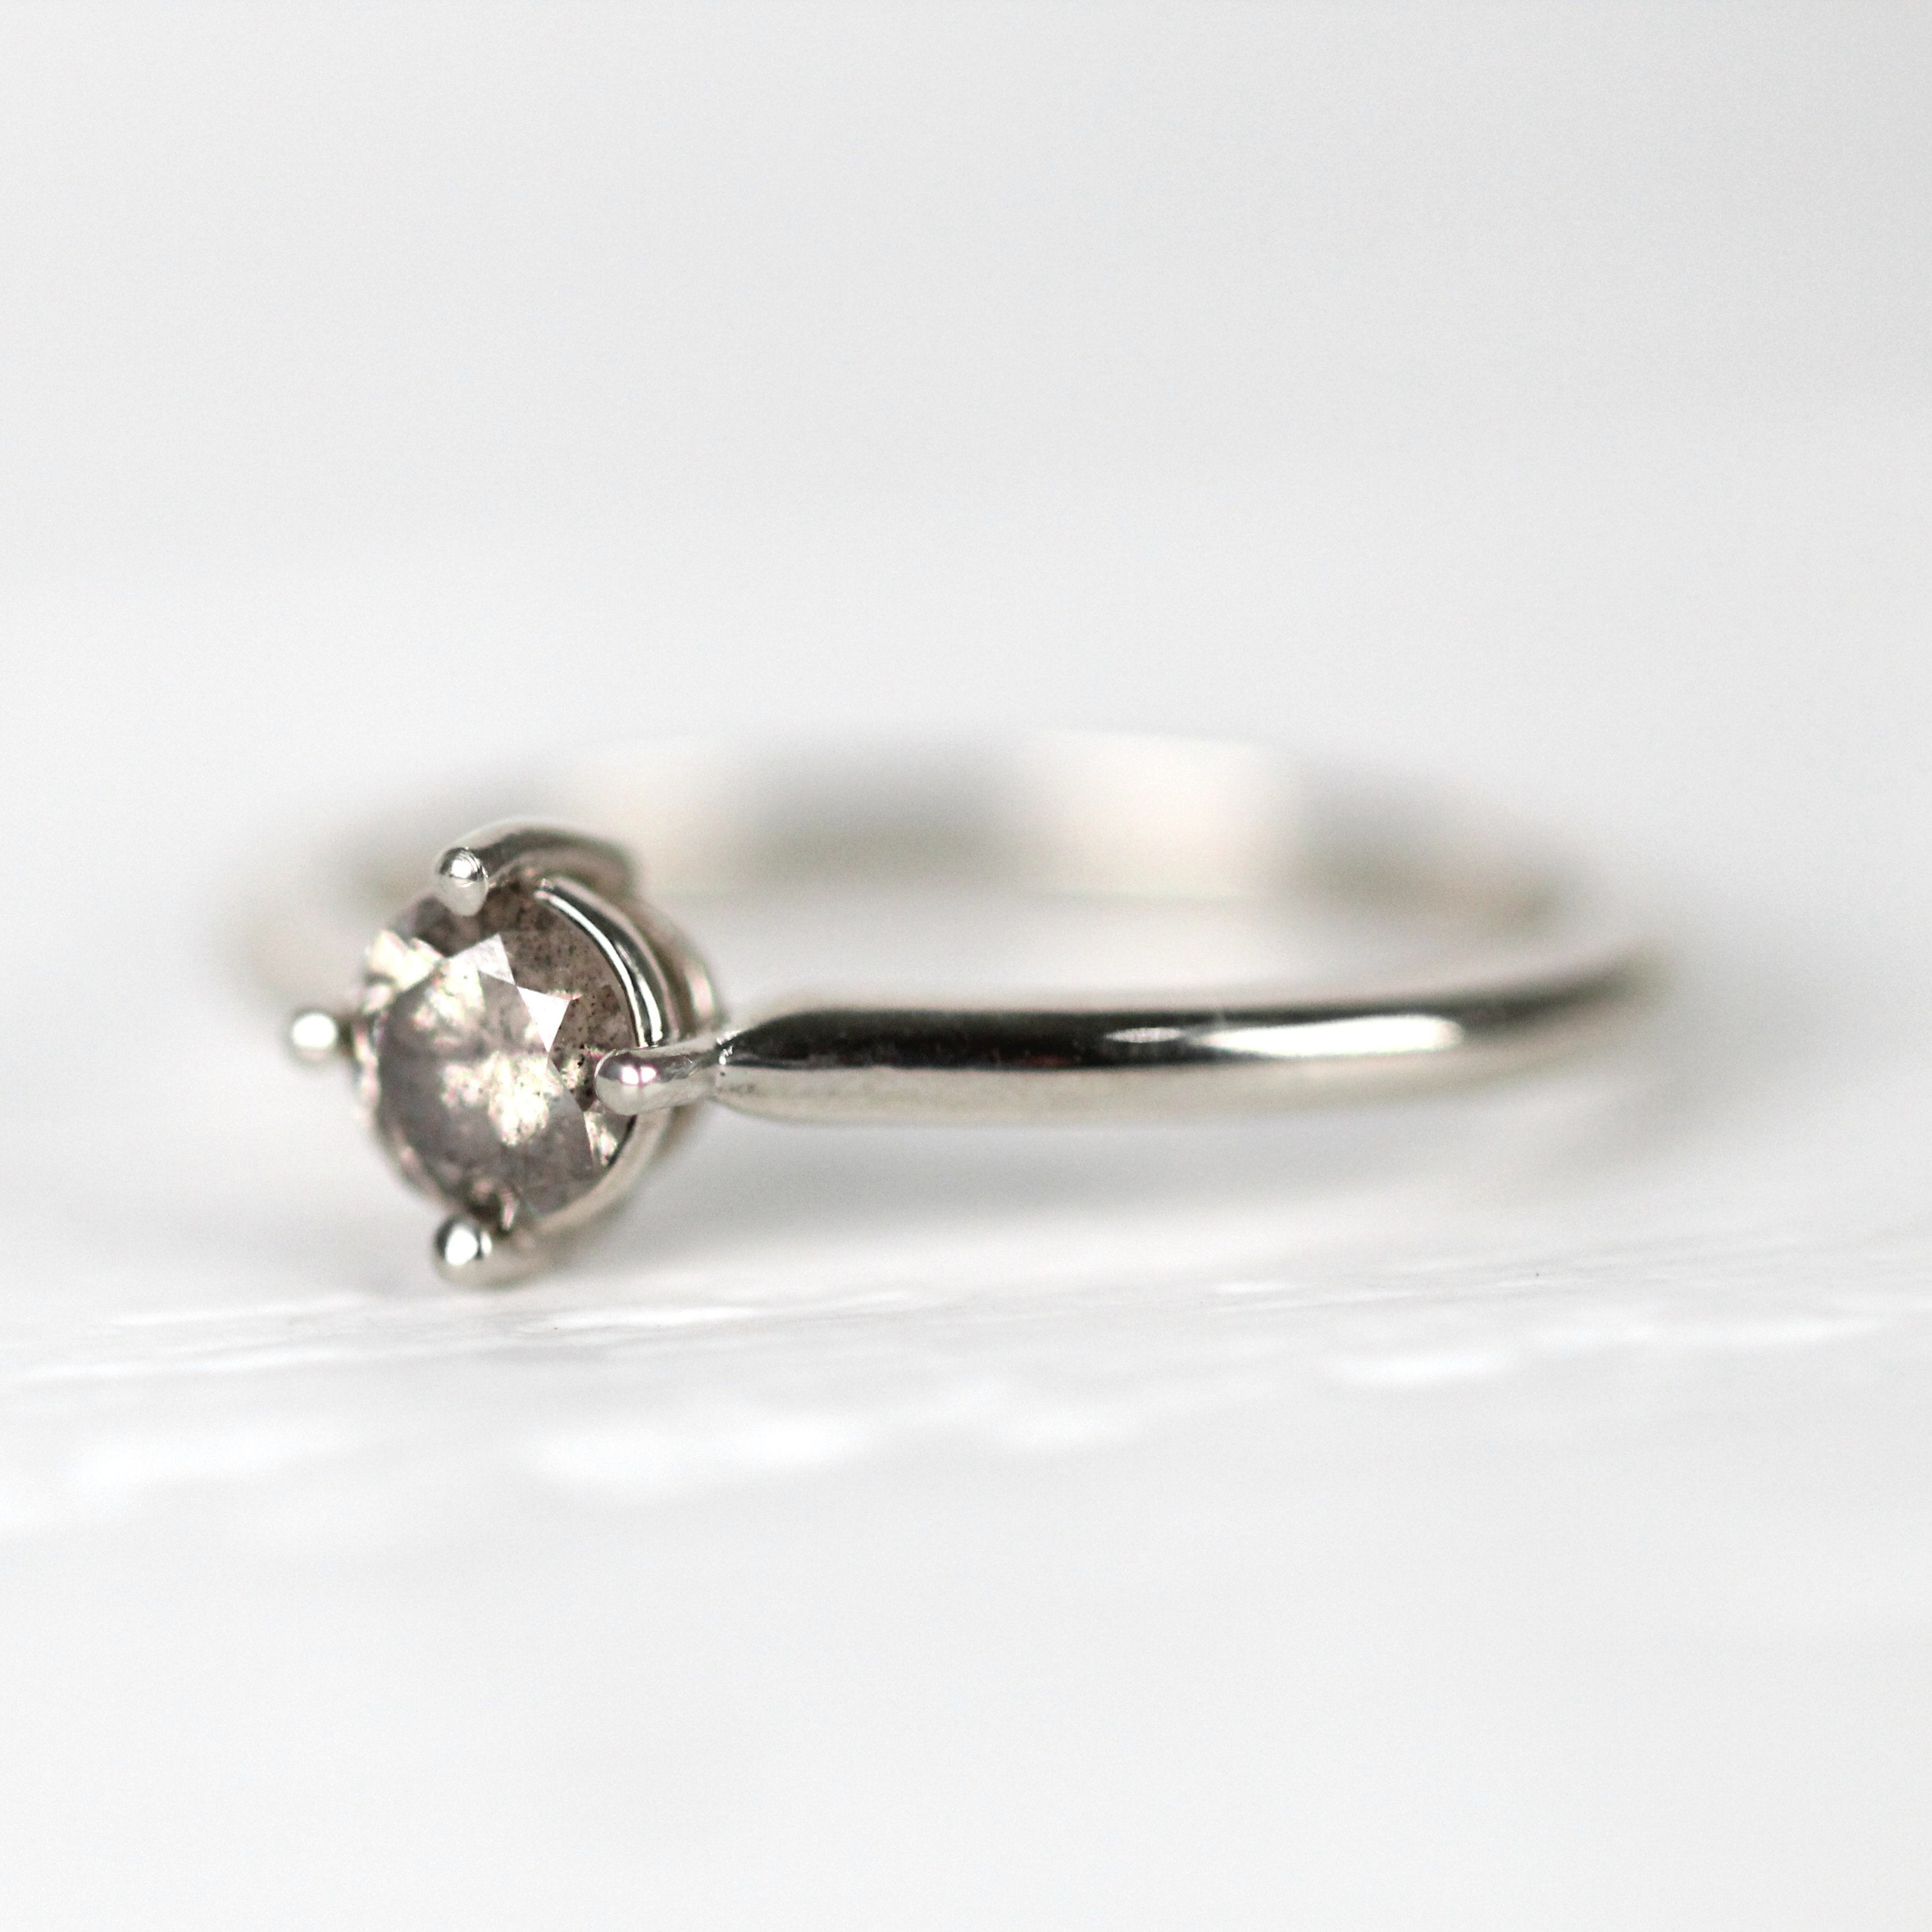 West Ring with .35ct Champagne Diamond in 14k White Gold - ready to size and ship